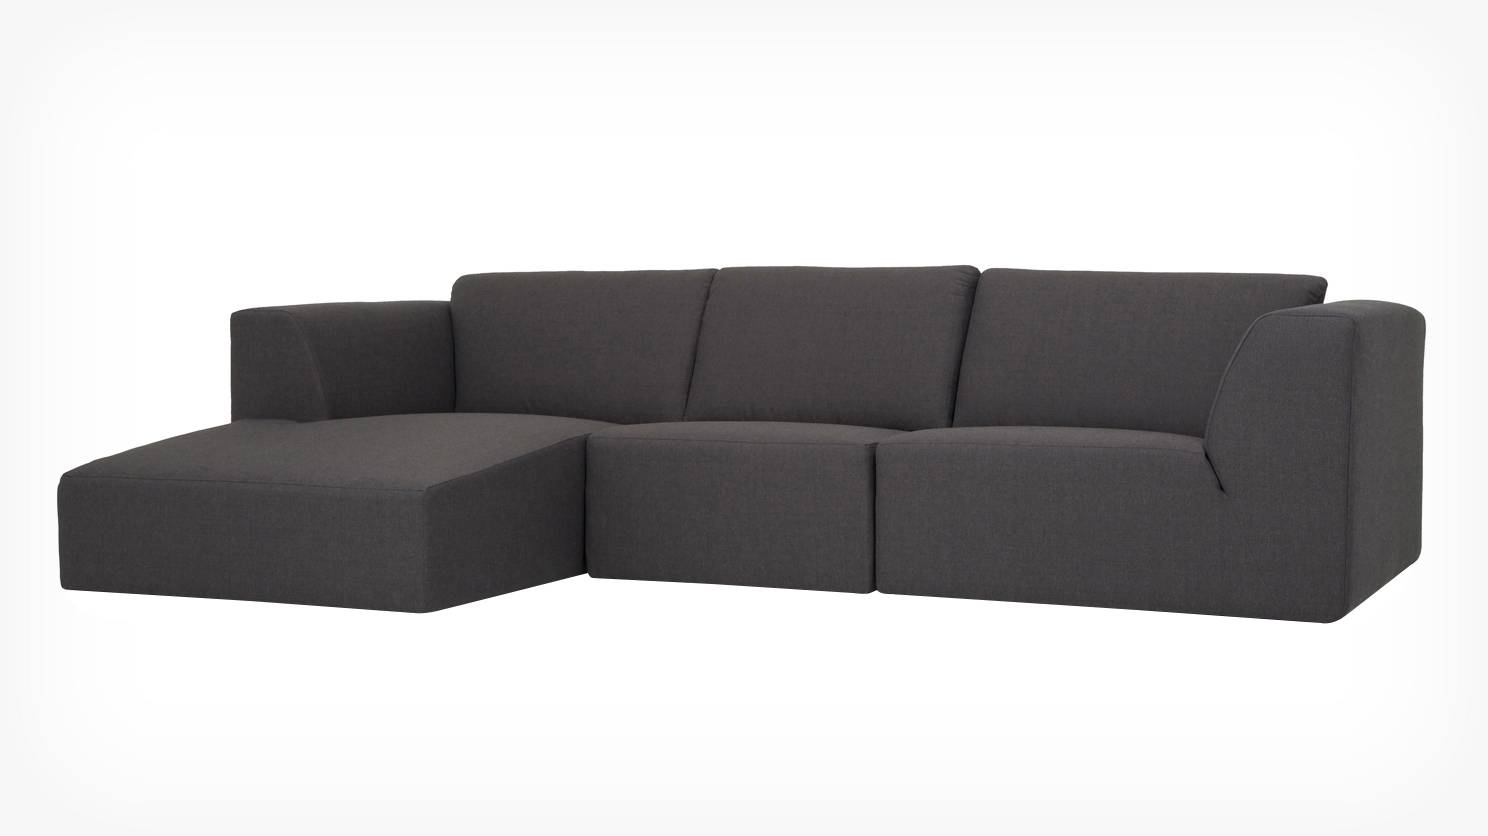 Eq3 | Morten 3-Piece Sectional Sofa With Chaise - Fabric intended for Green Sectional Sofa With Chaise (Image 6 of 30)